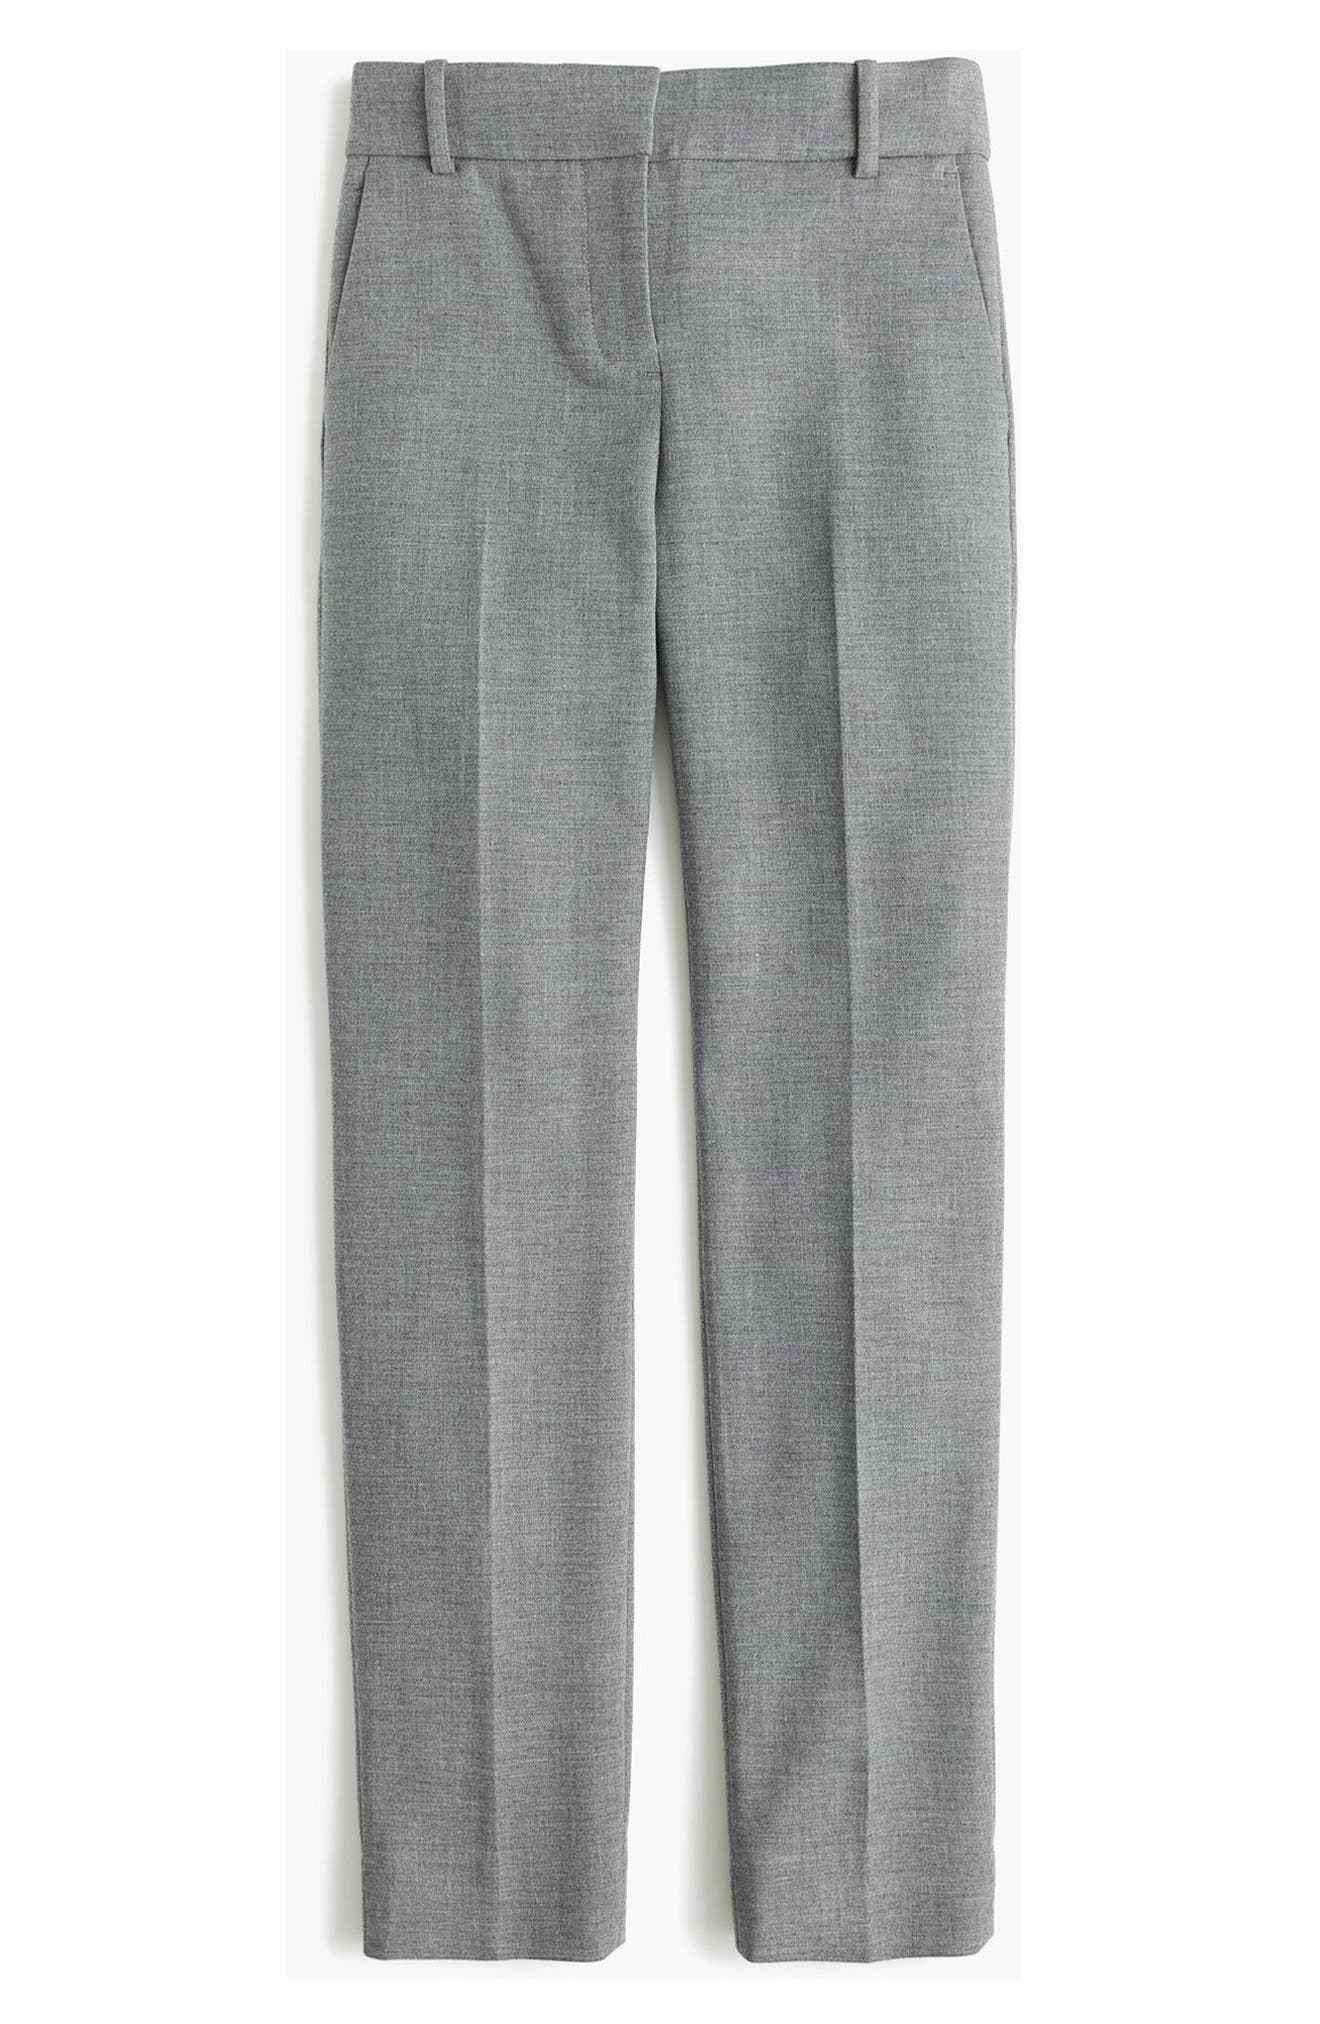 J.Crew Cameron Four Season Crop Pants (Regular & Petite)